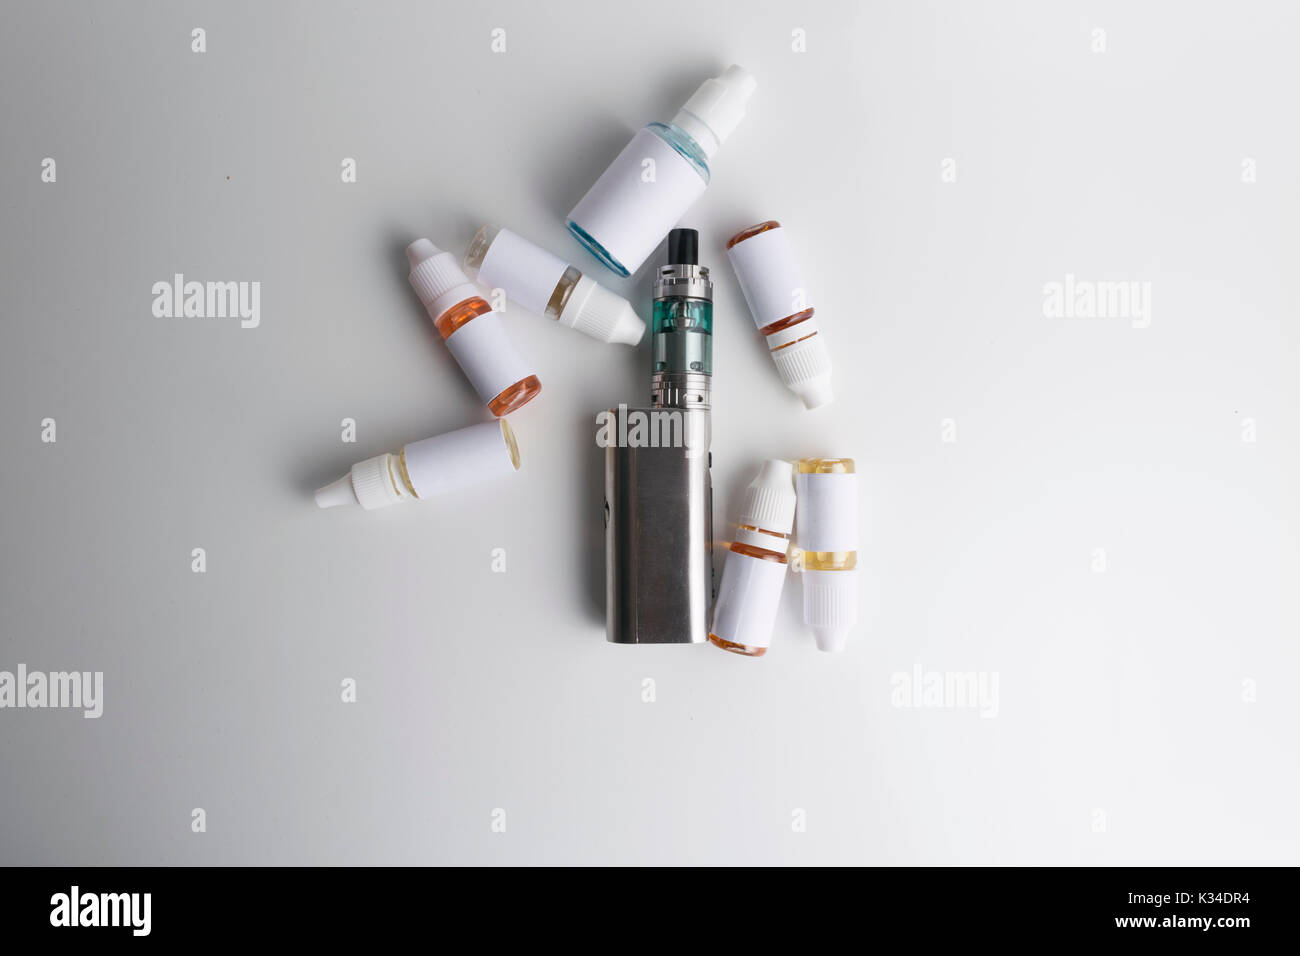 Isolated electronic cigarette with e-liquid or e-juice on a white background. - Stock Image